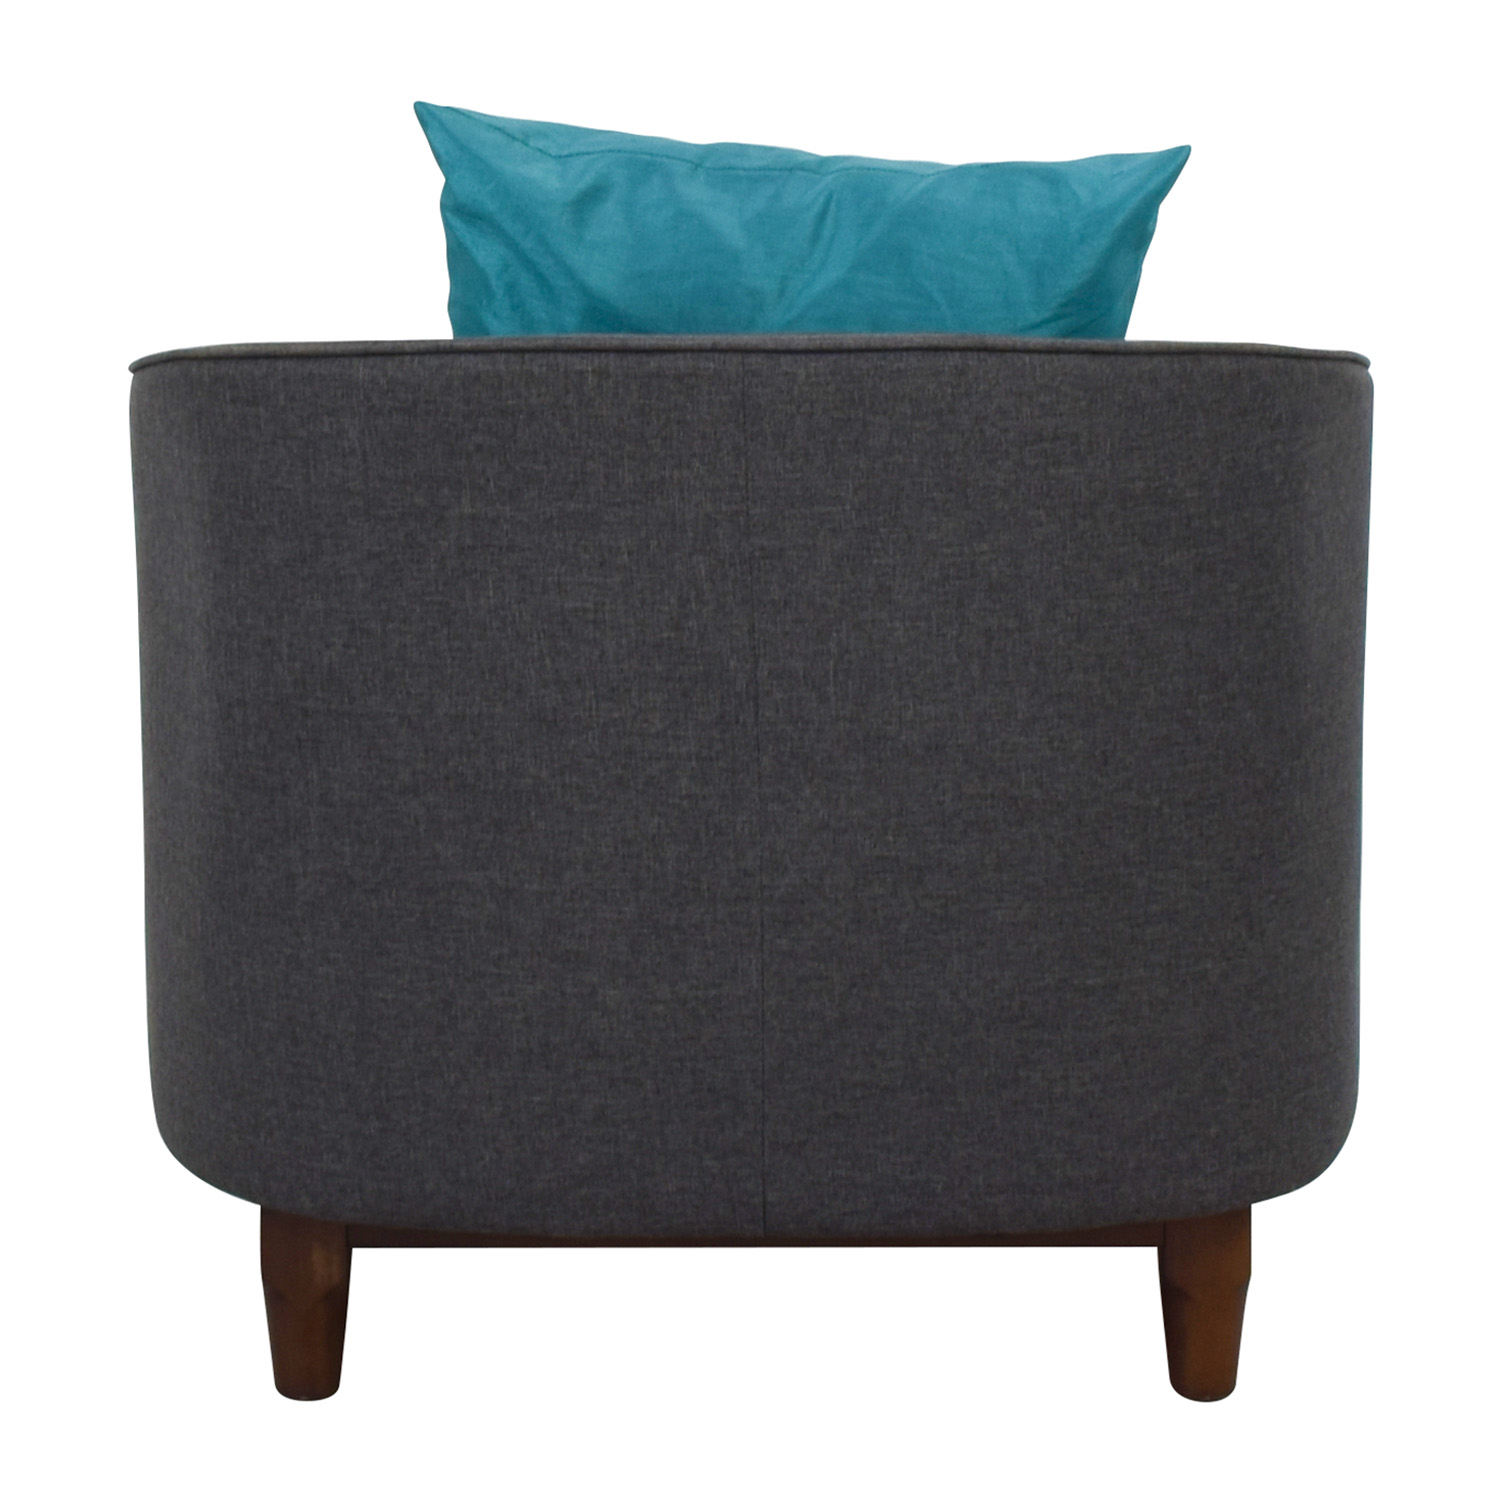 buy Modway Grey Upholstered Club Chair Modway